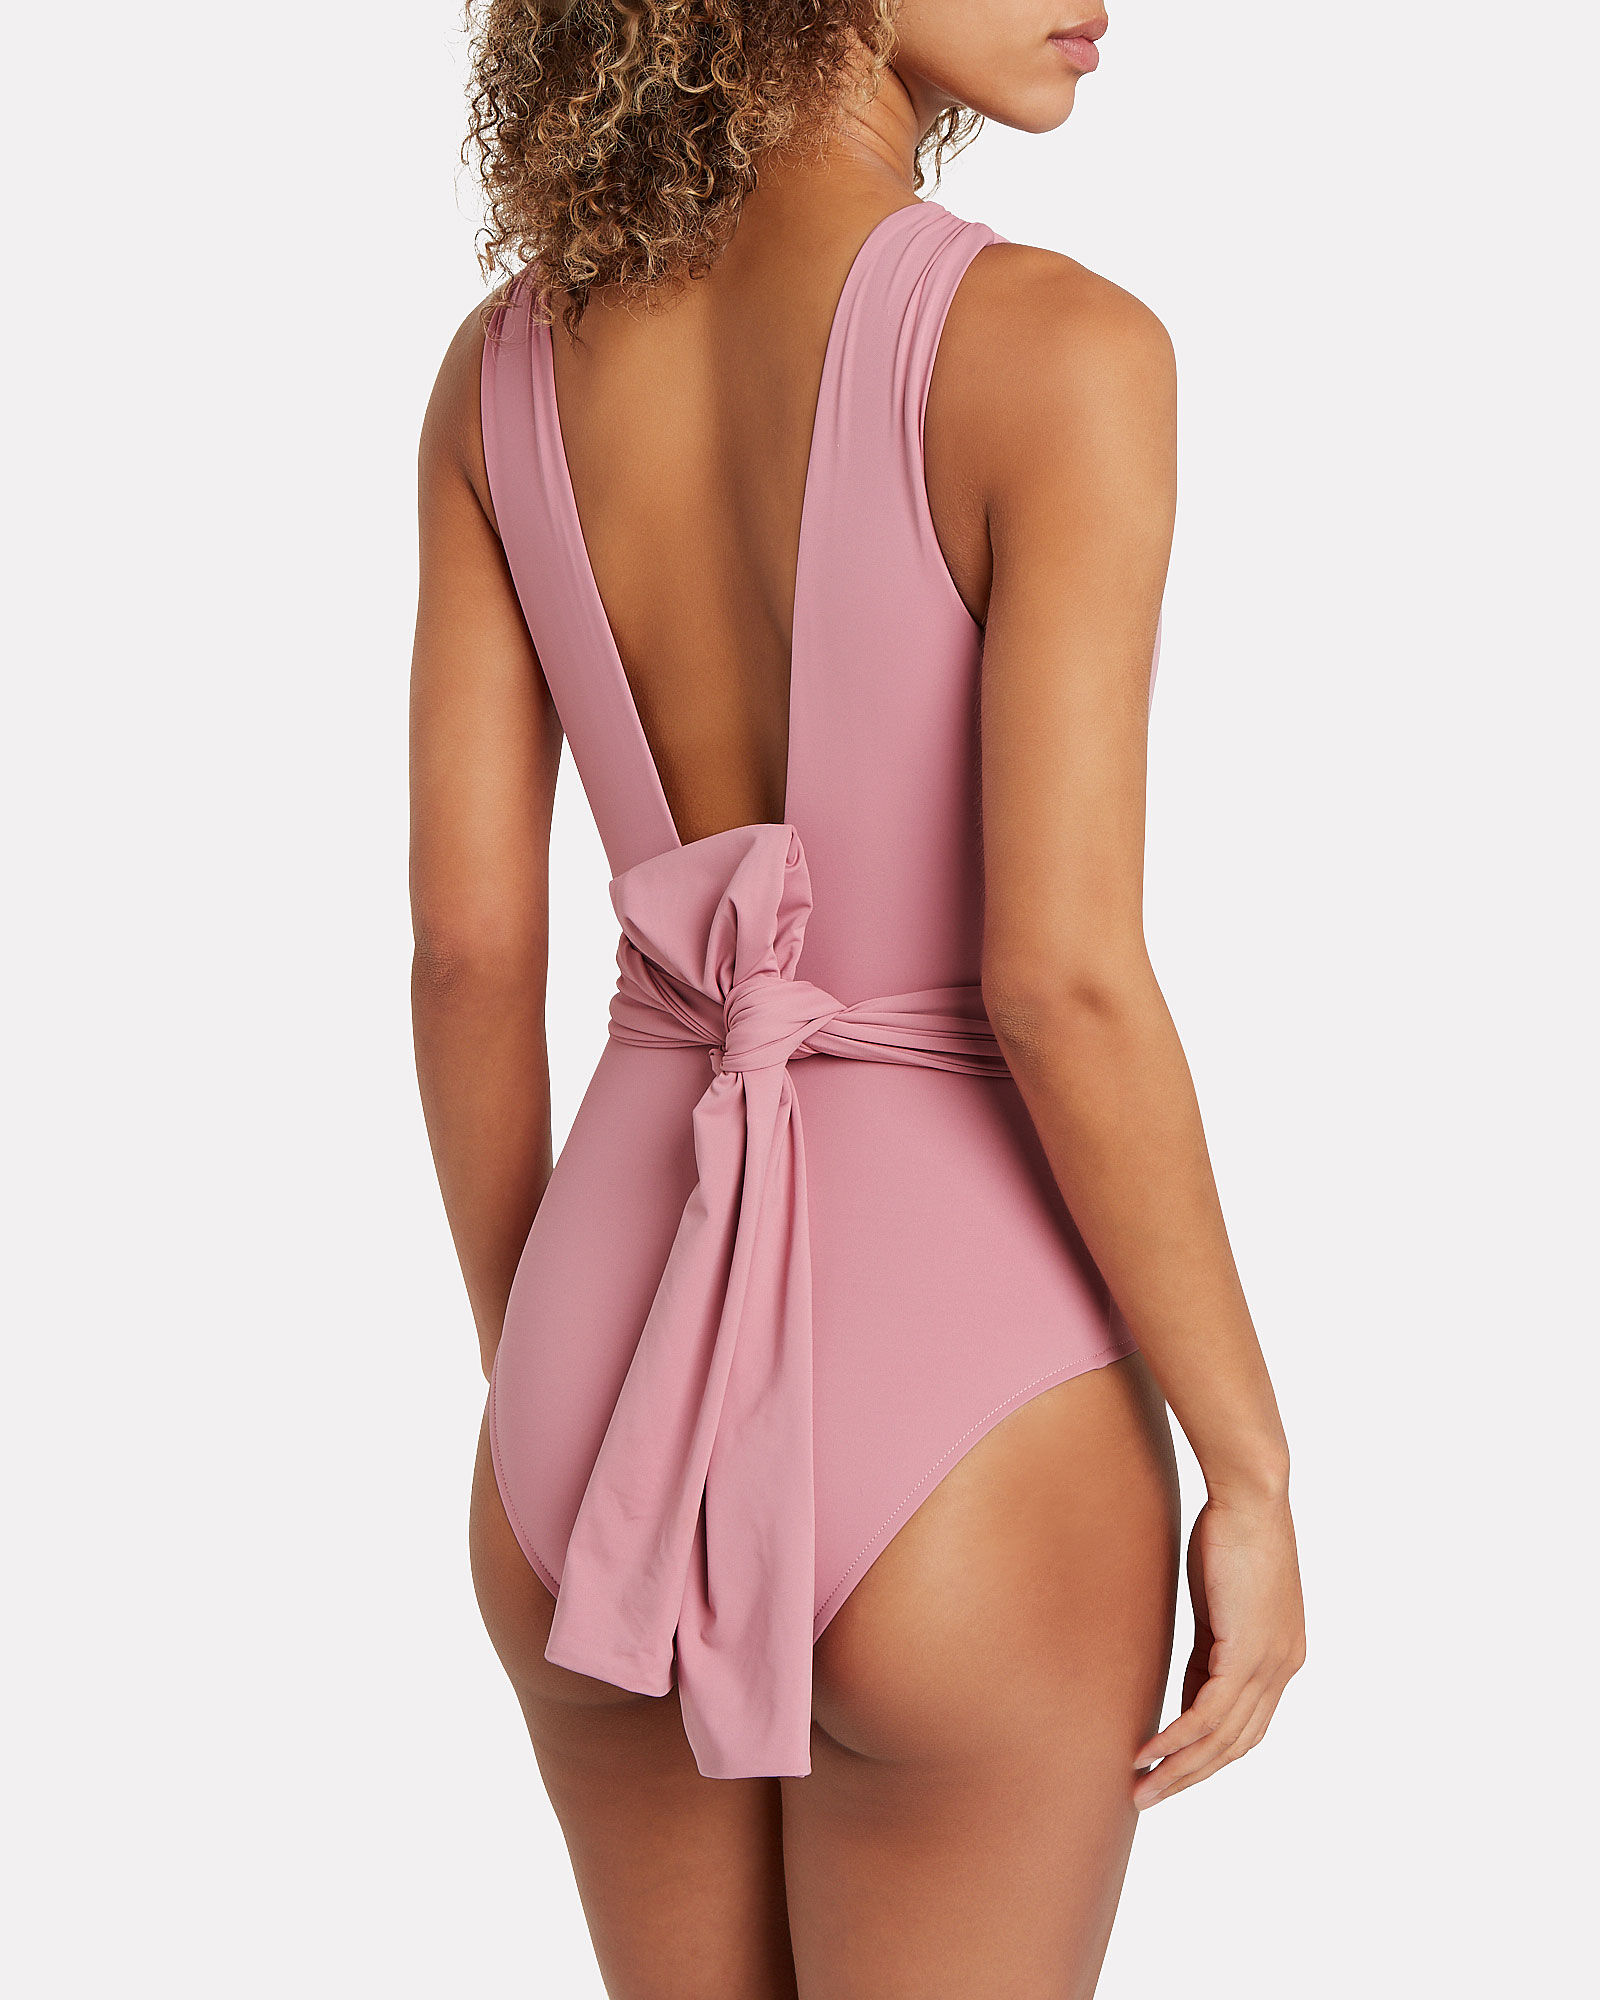 Addison Twisted One-Piece Swimsuit, PINK, hi-res